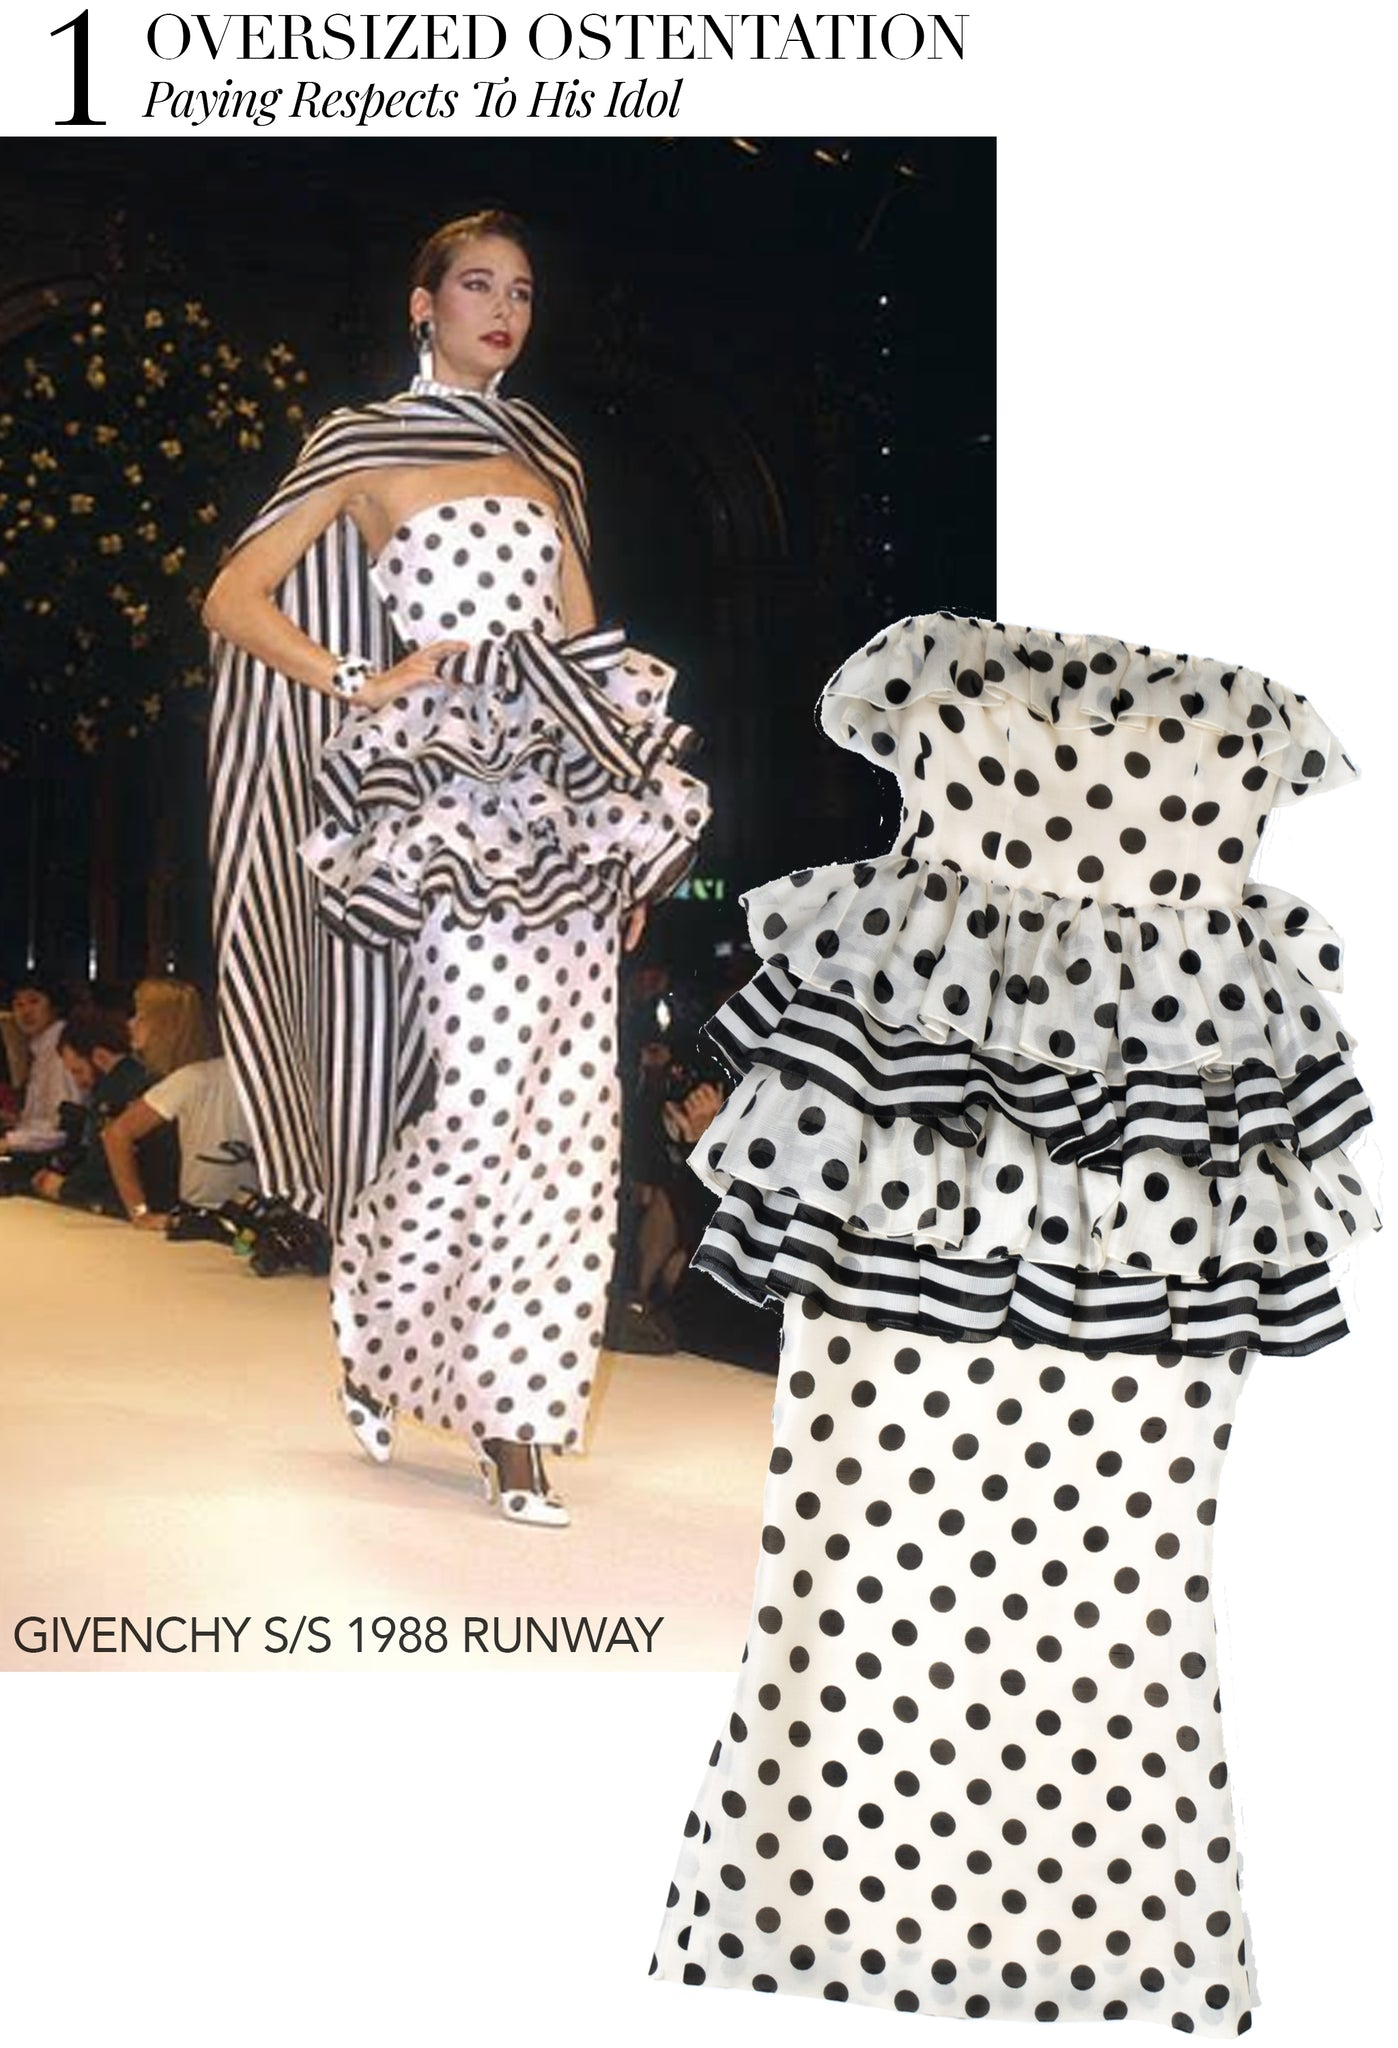 Recess Dress Code Givenchy Spring Summer 1988 Polka Dot Dress Oversized Ostentation